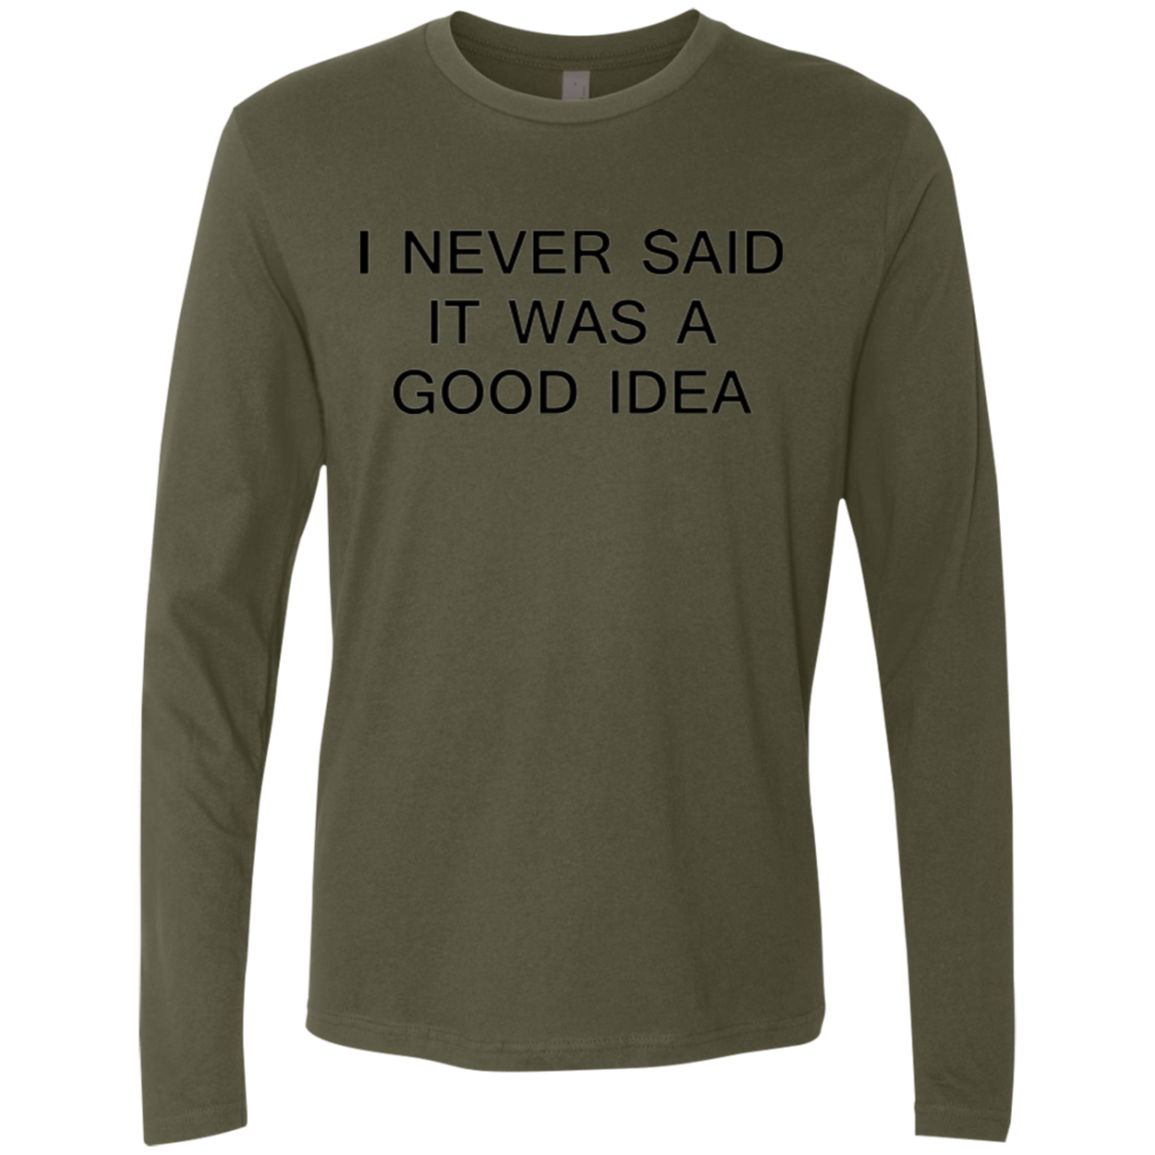 I Never Said it was a Good Idea Men's Long Sleeve Tee - Trendy Tees